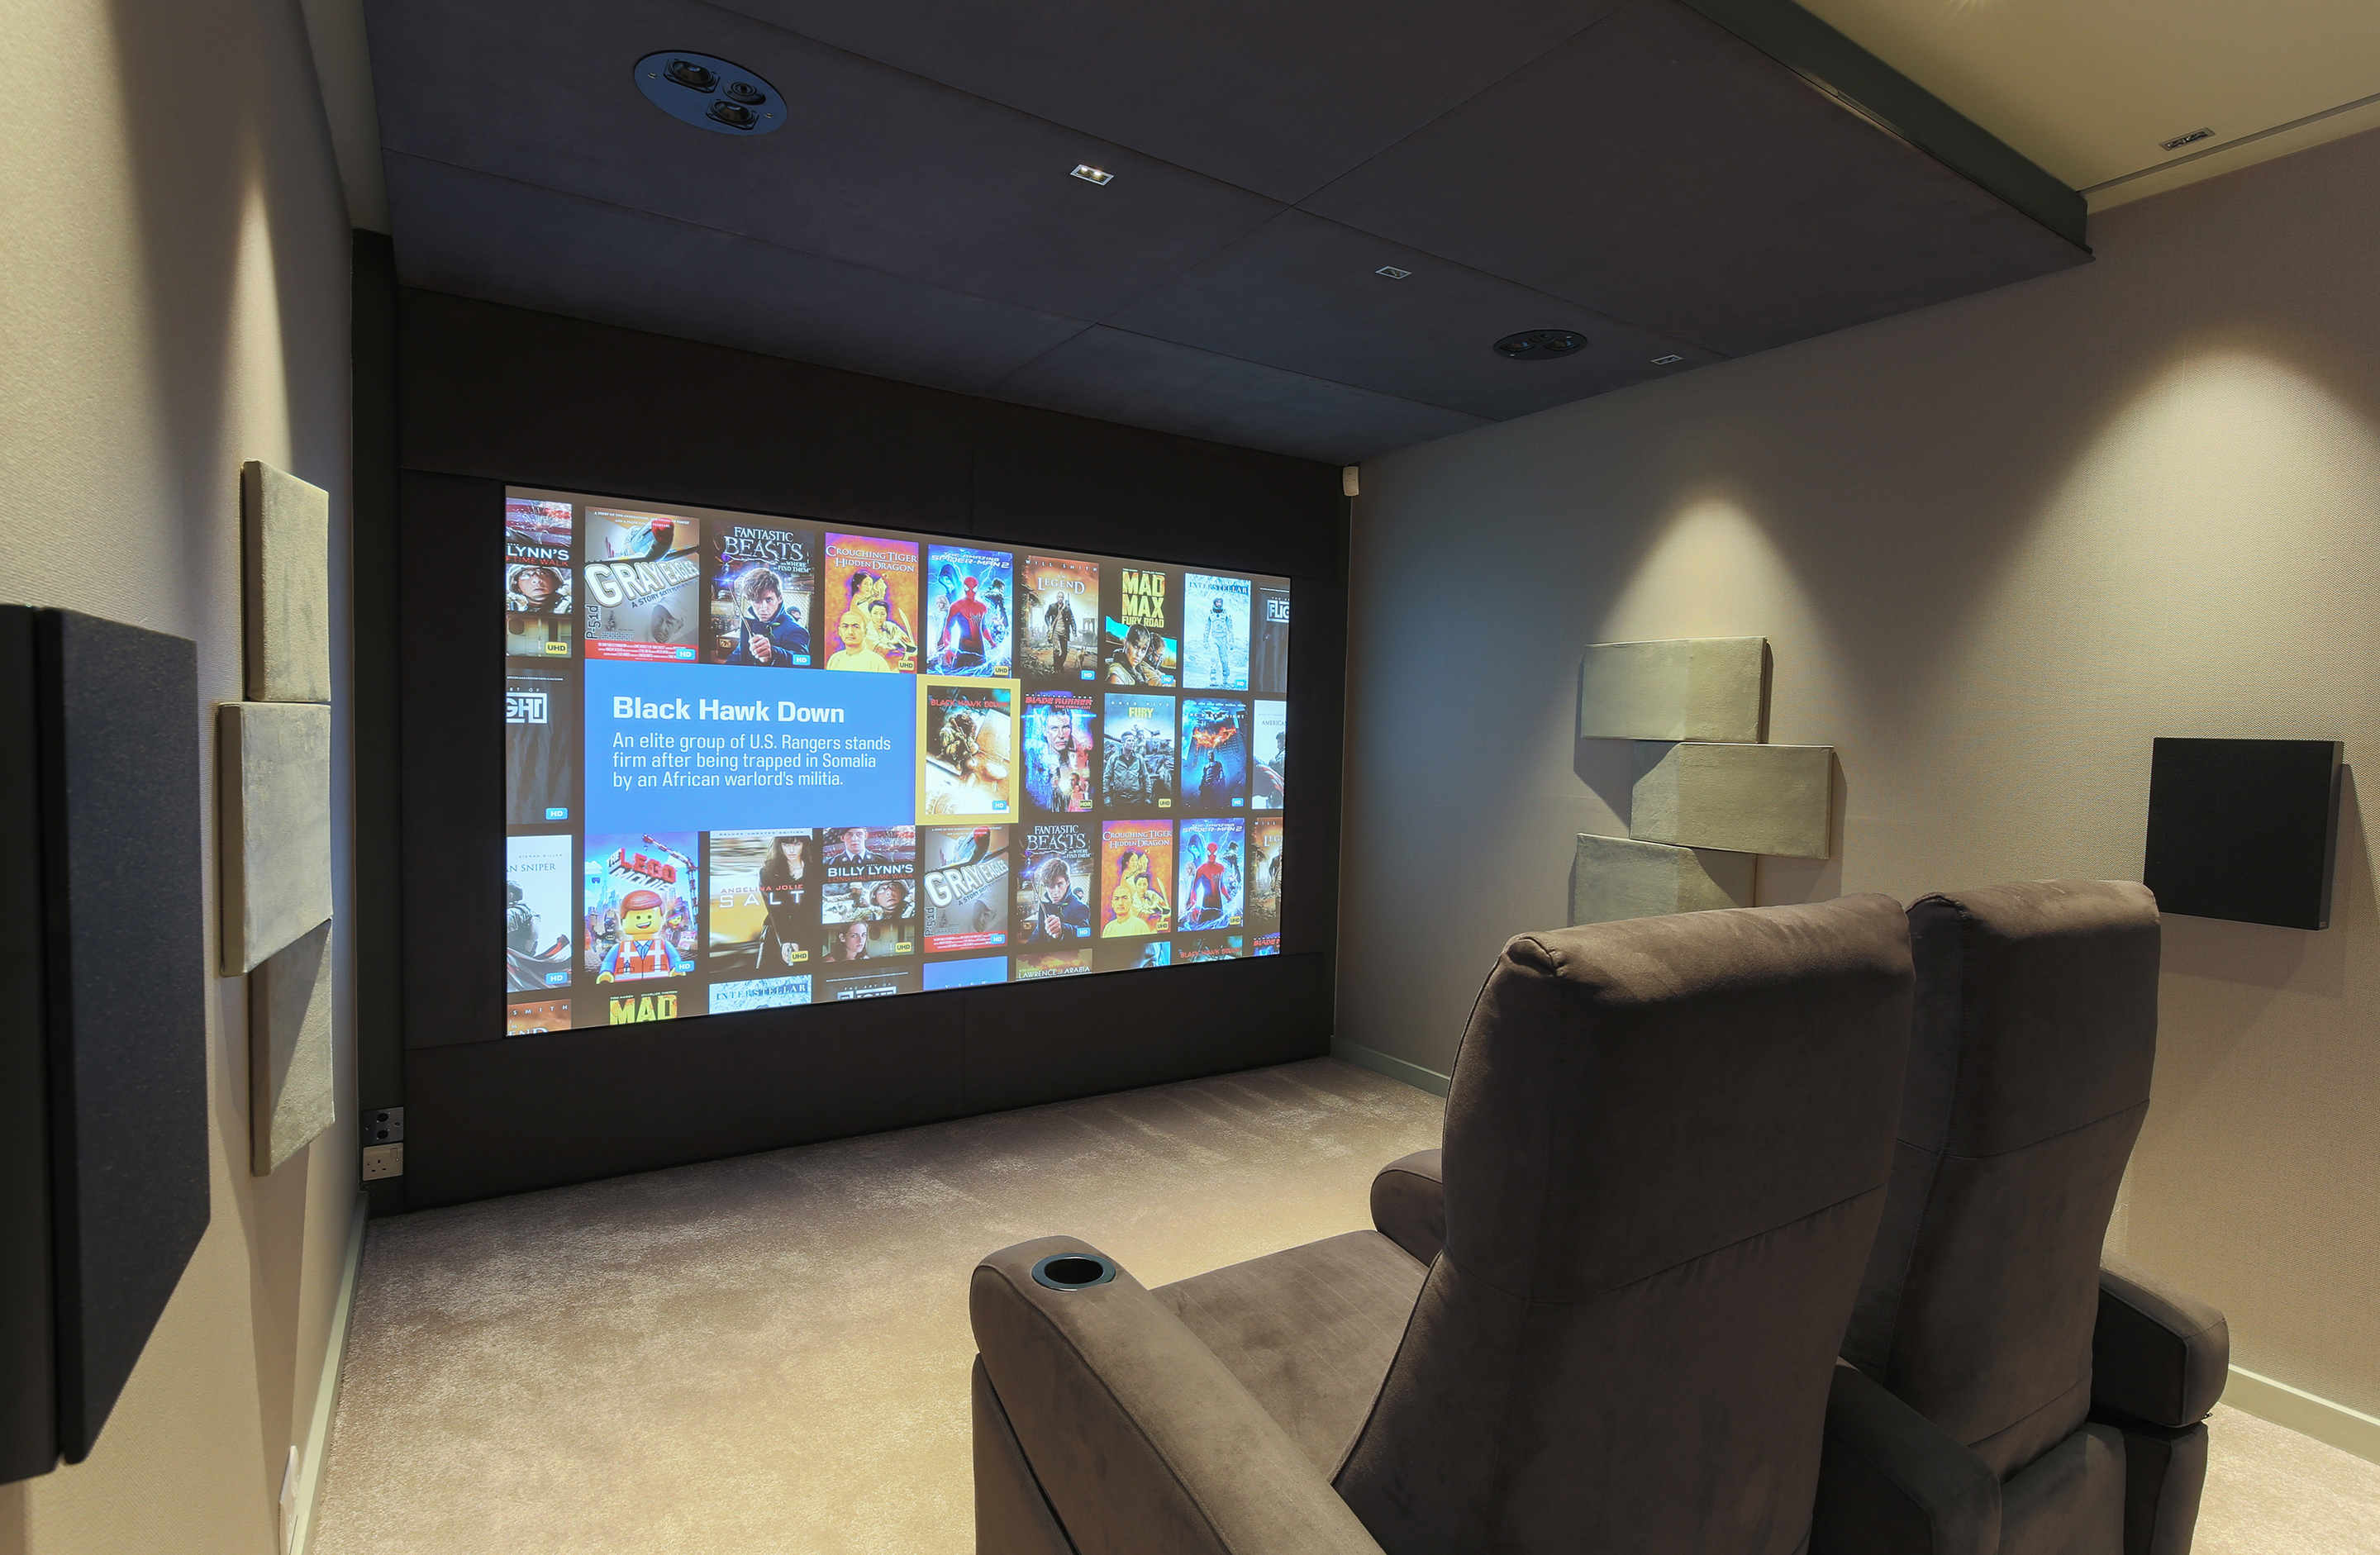 Kaleidescape hoem cinema system south west UK